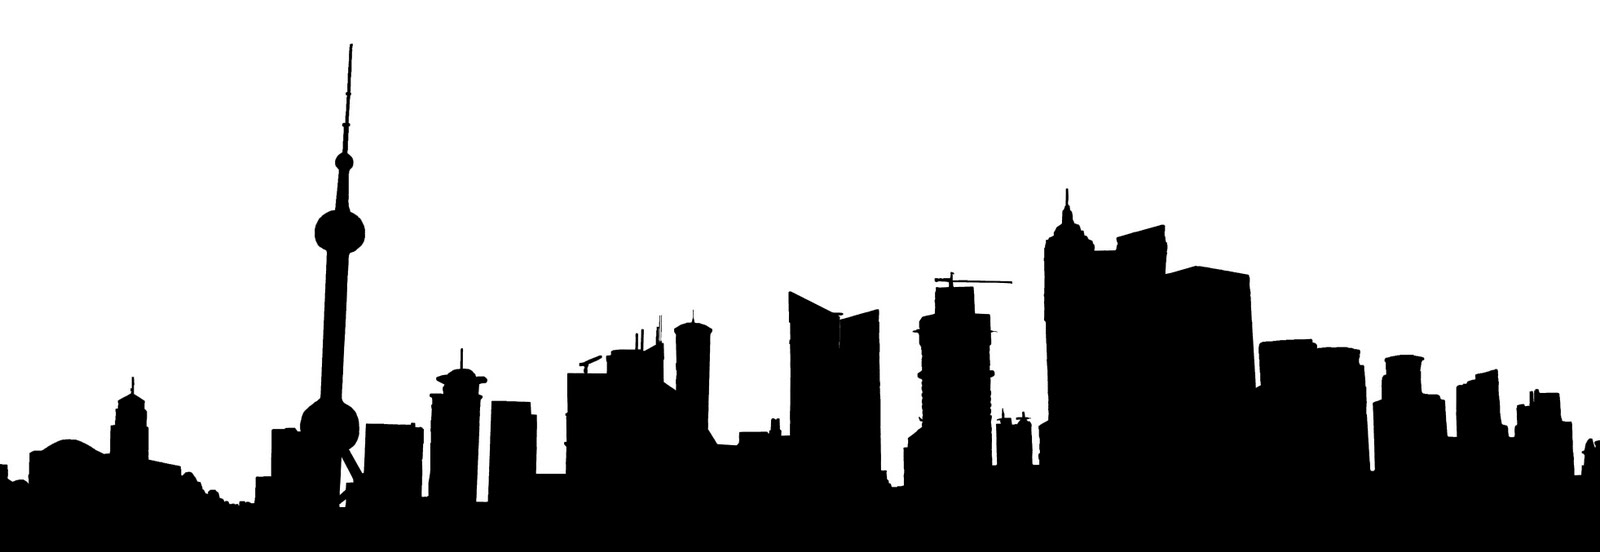 City Scape Clip Art - Cliparts.co